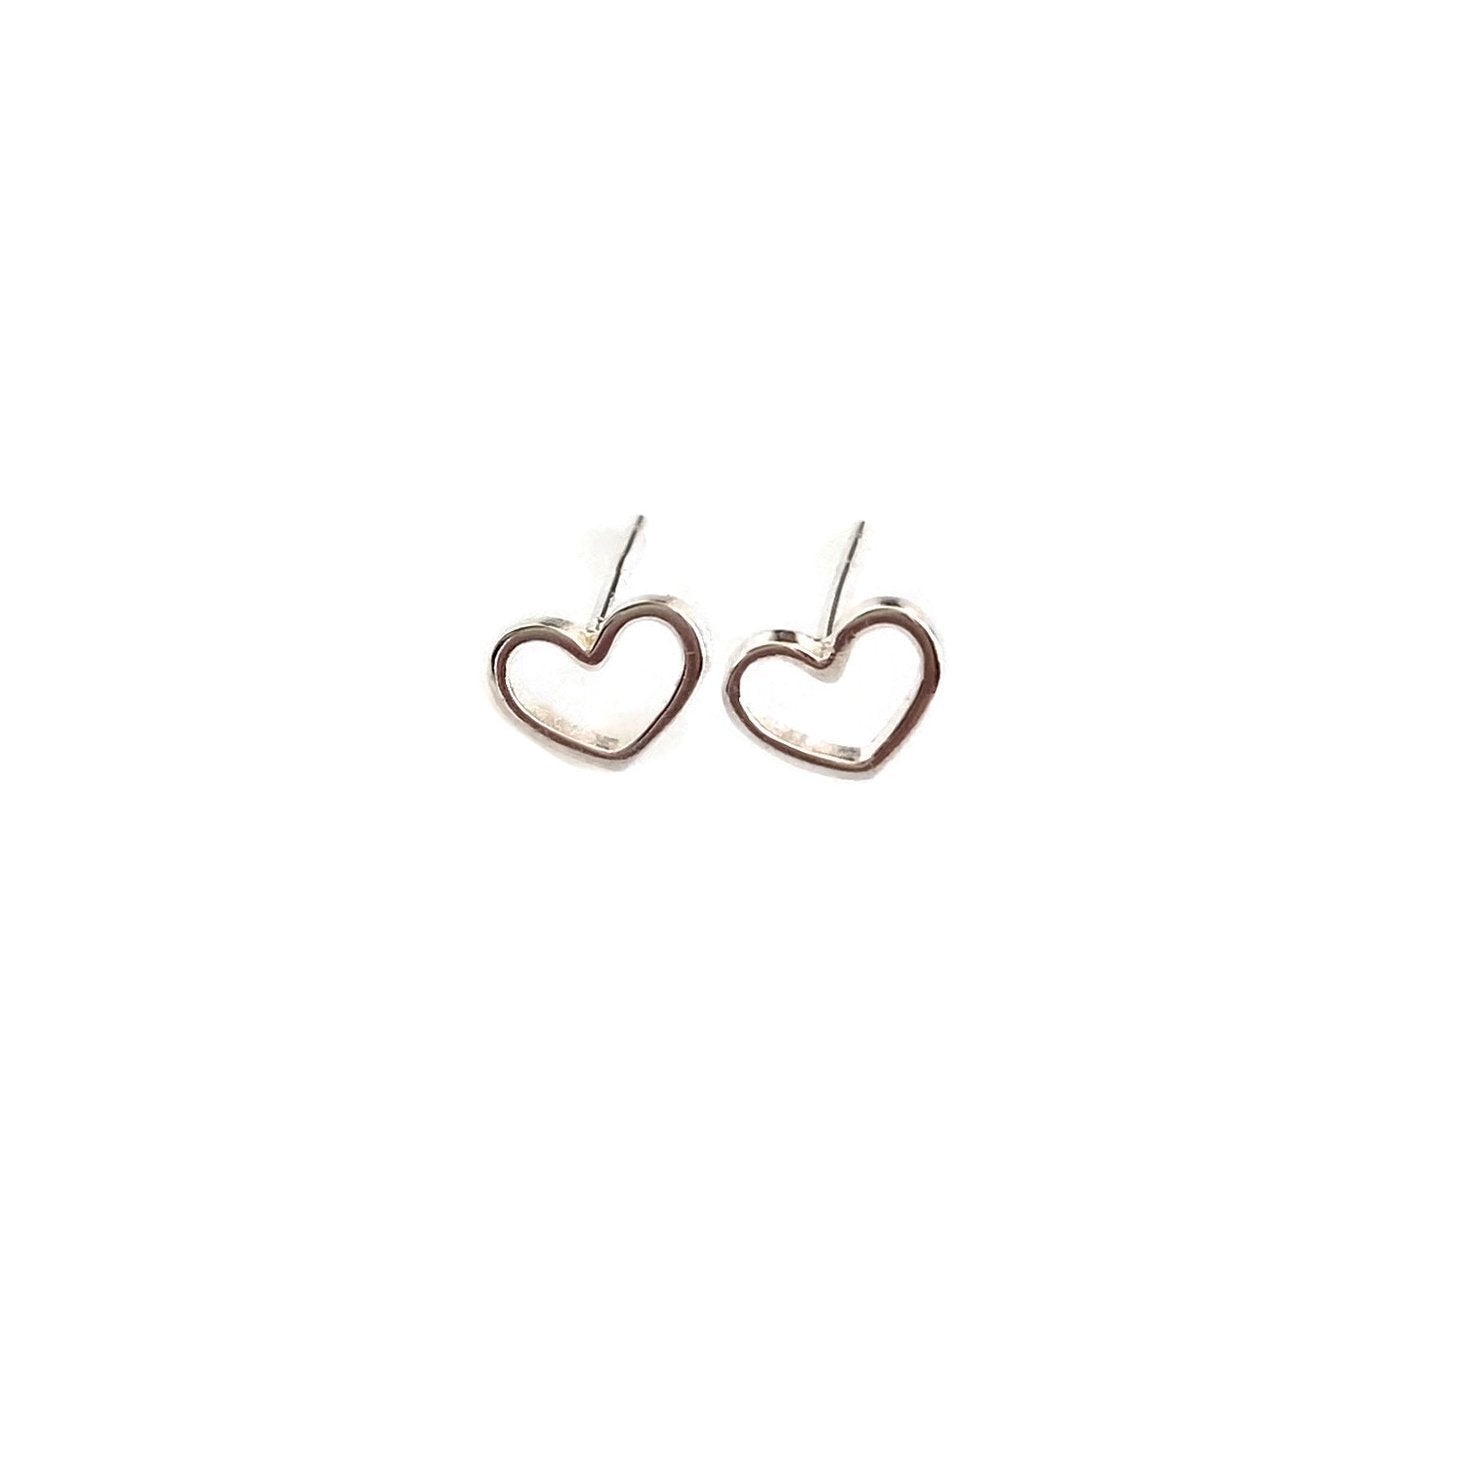 sterling silver heart stud earrings are great as everyday earrings